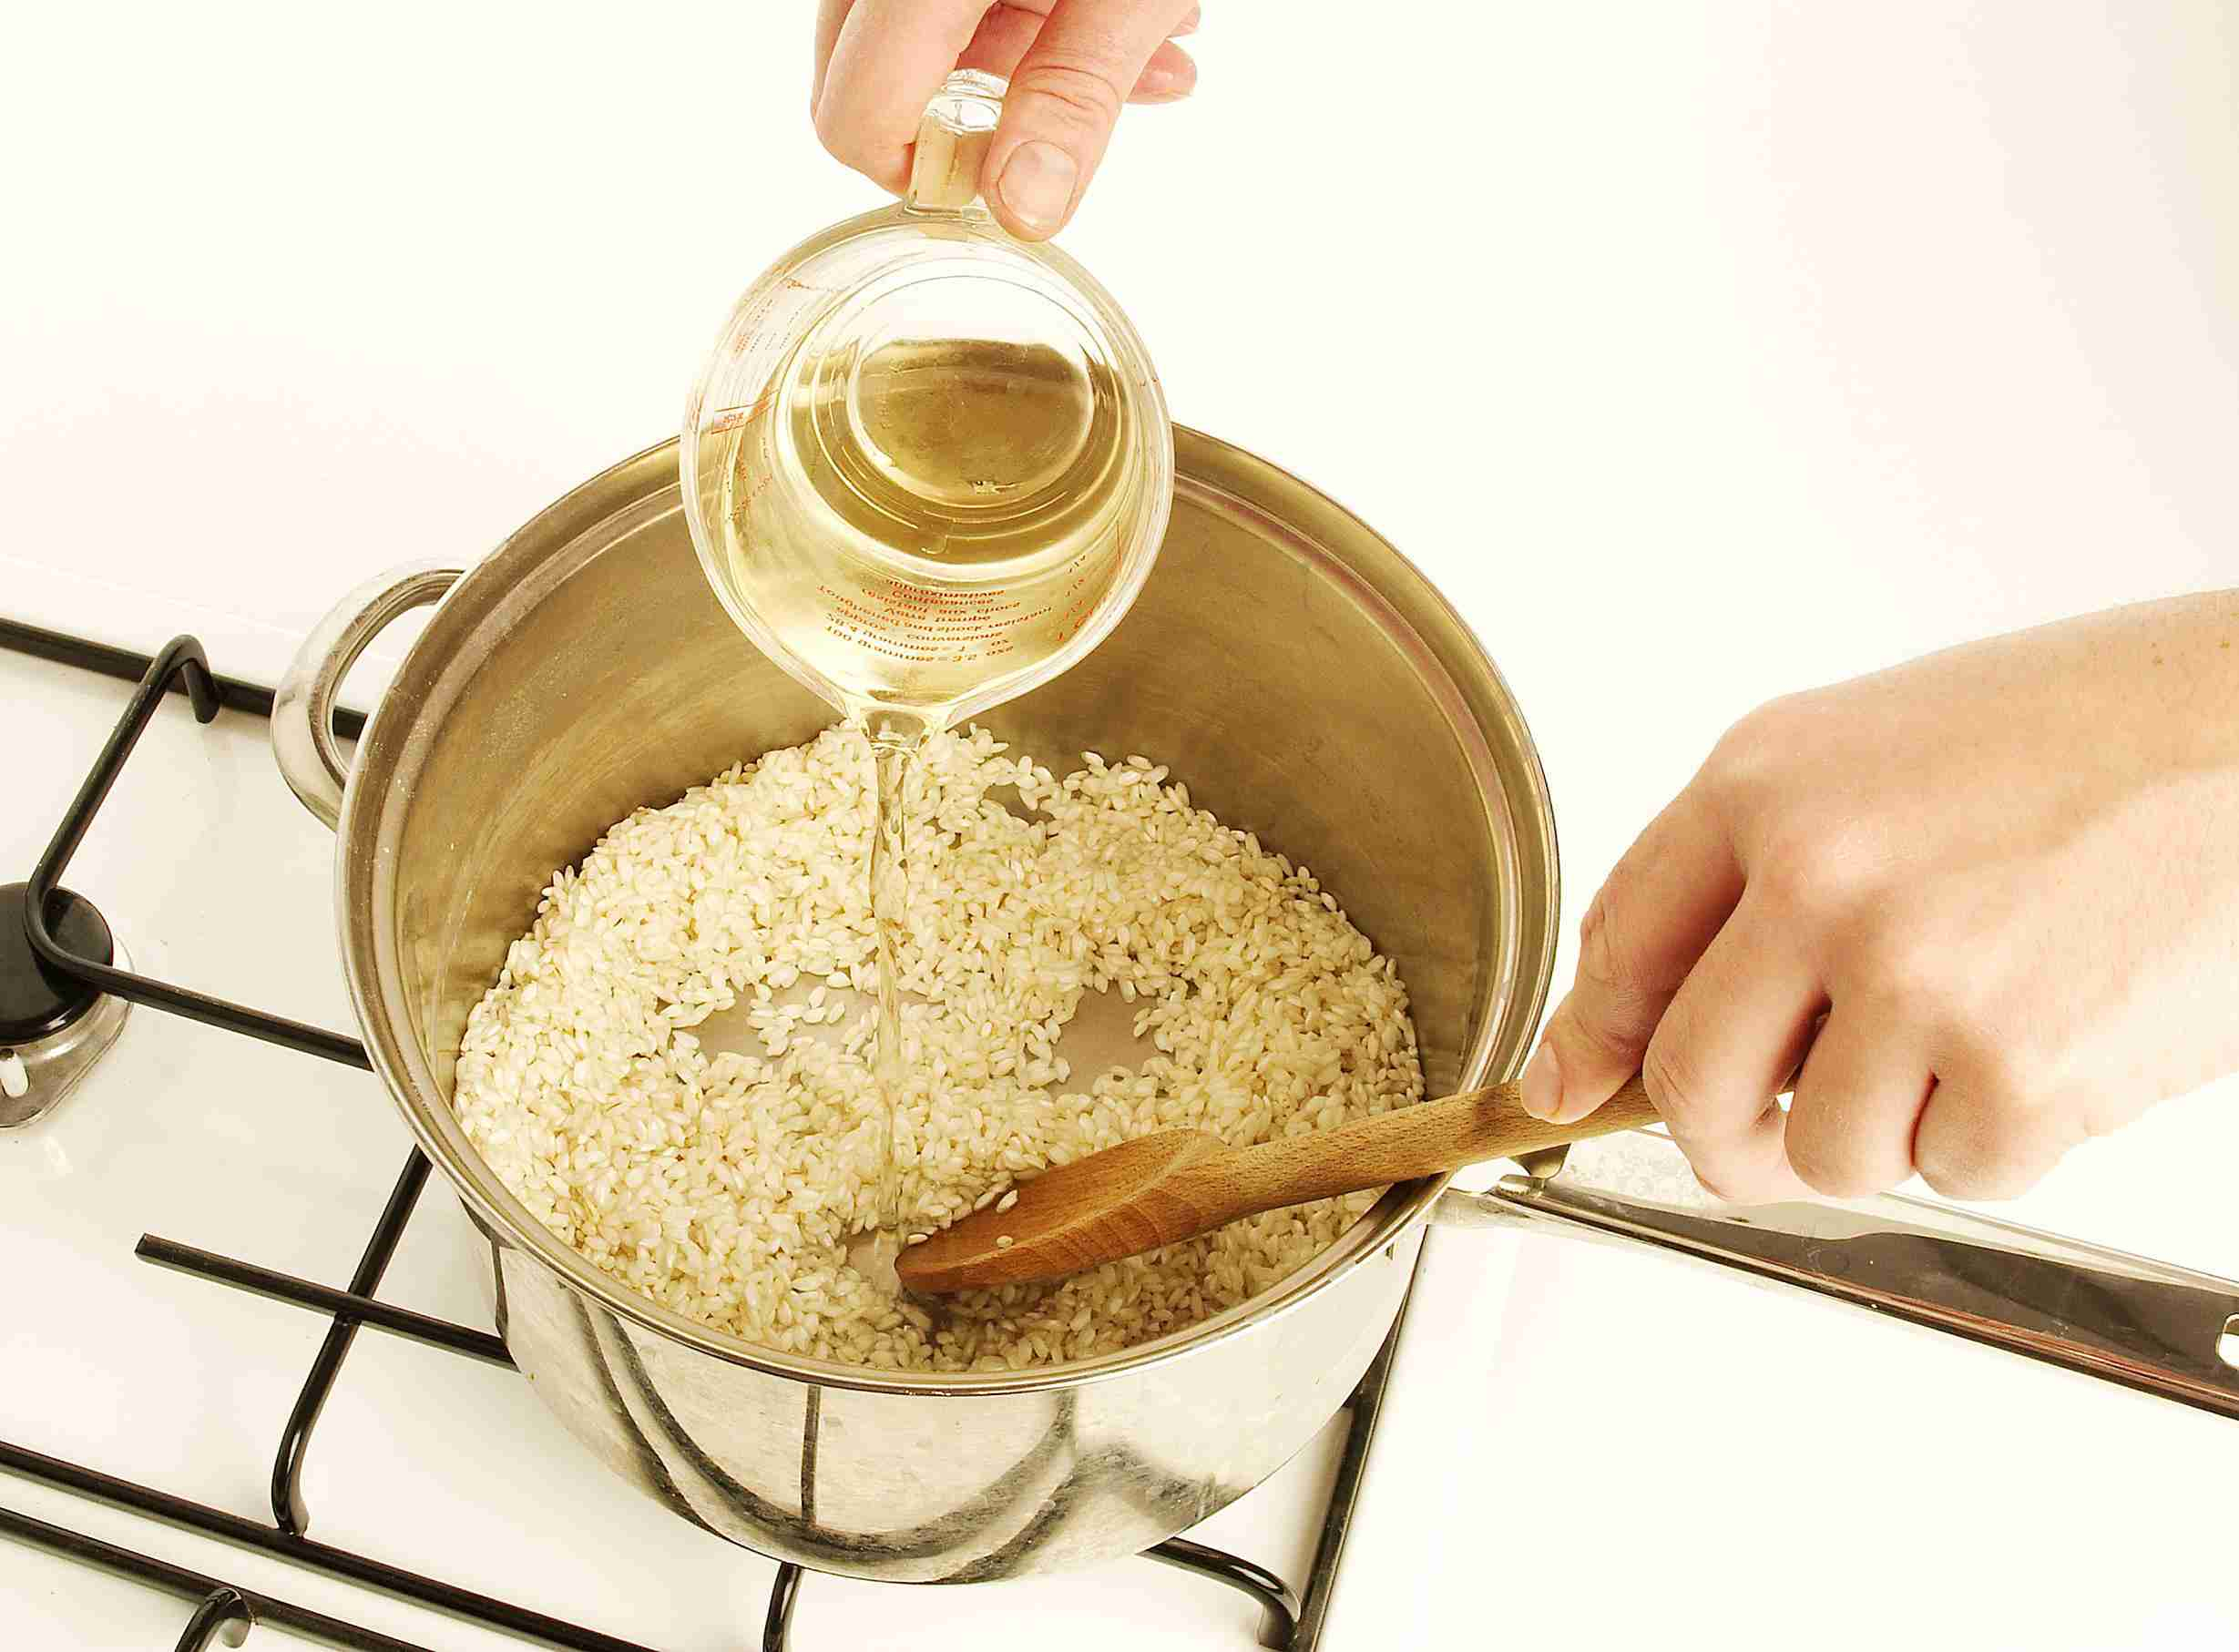 Hand pouring water into pot with rice